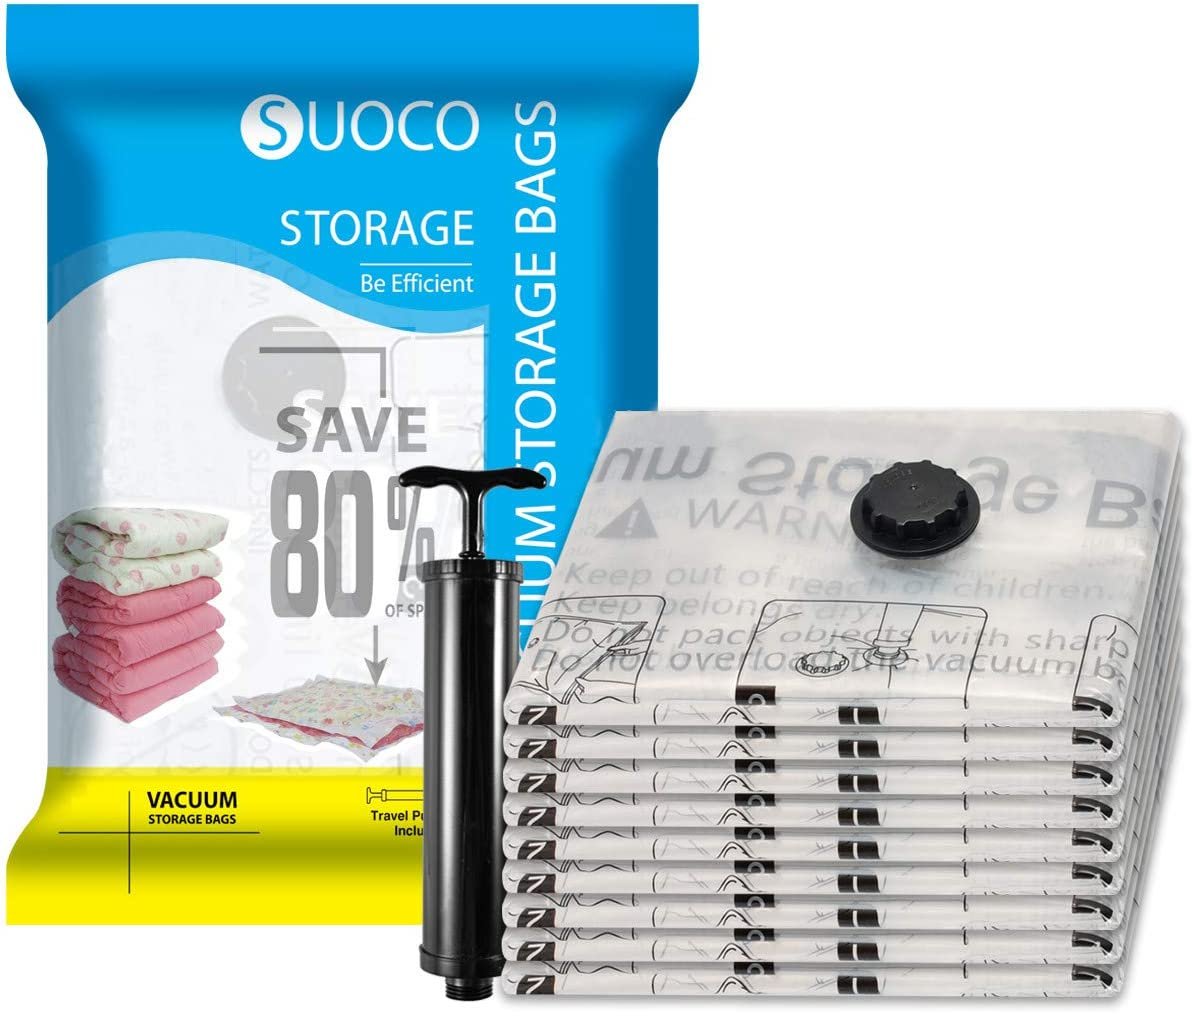 "SUOCO Vacuum Storage Bags 8 Pack Space Saver Compression Bags with Travel Hand Pump (Small 16""x 24"")"